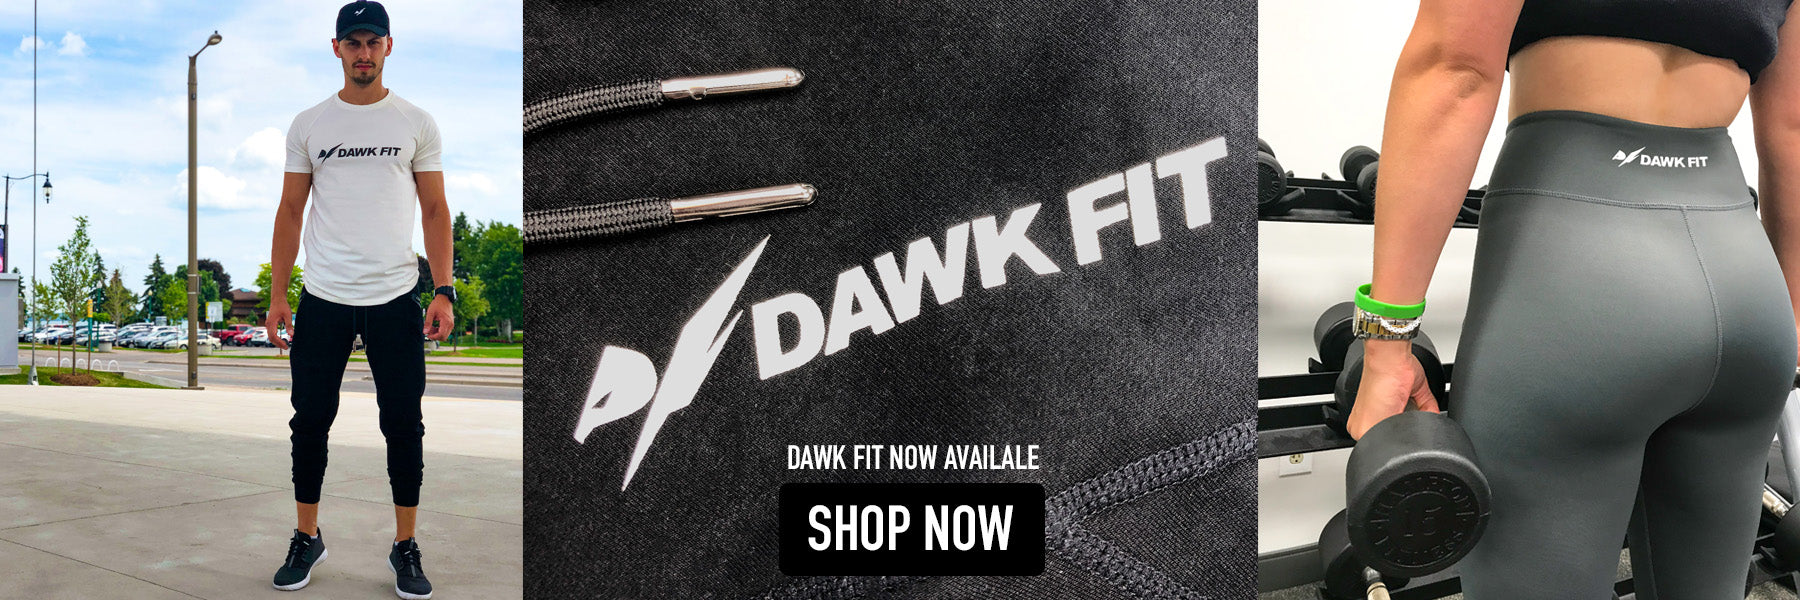 DAWK FIT Now Available